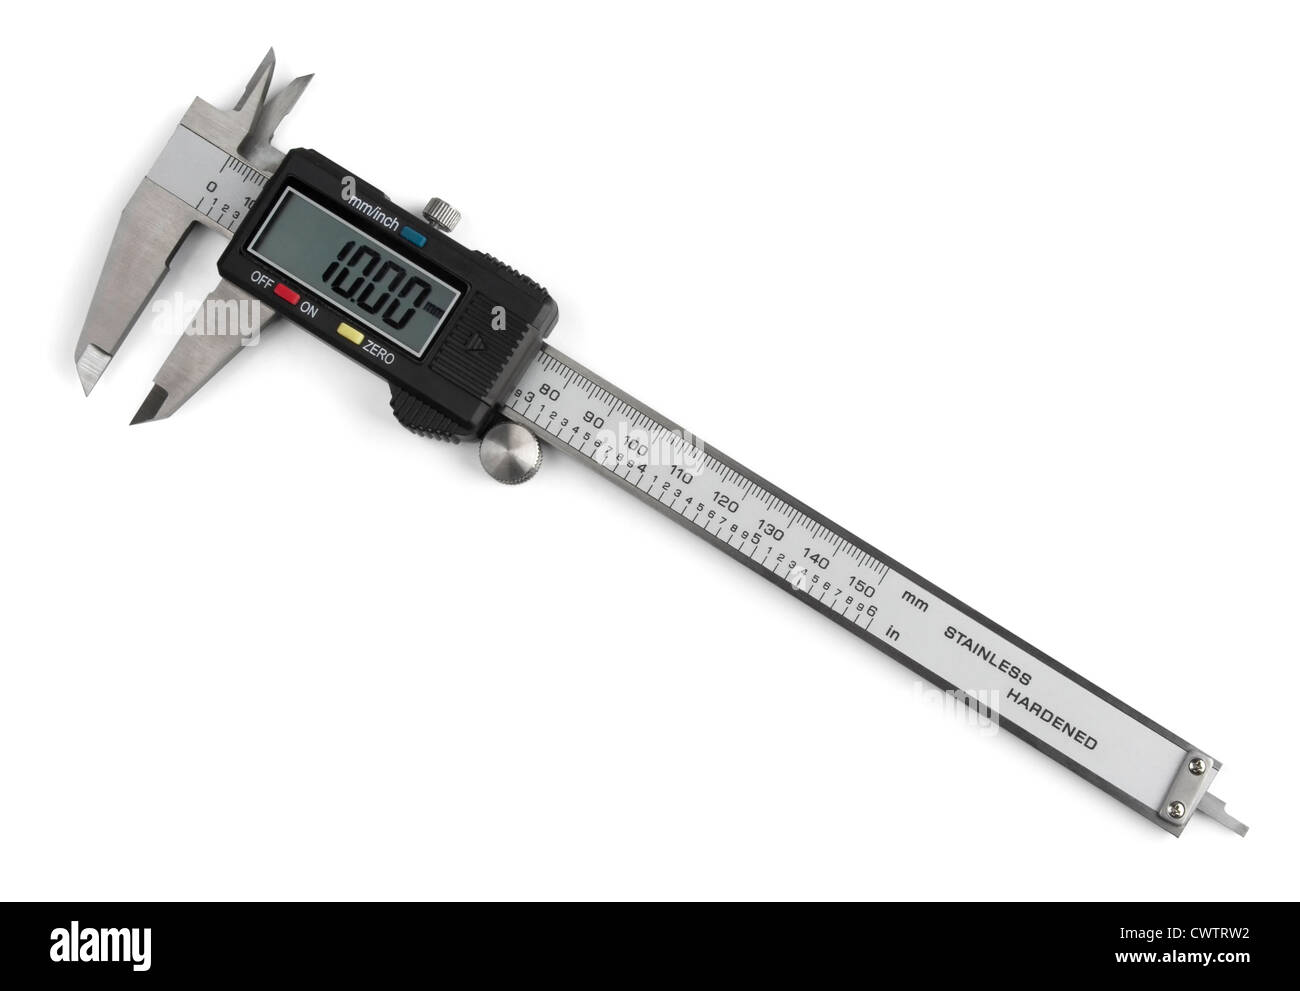 Electronic digital vernier caliper isolated on white - Stock Image